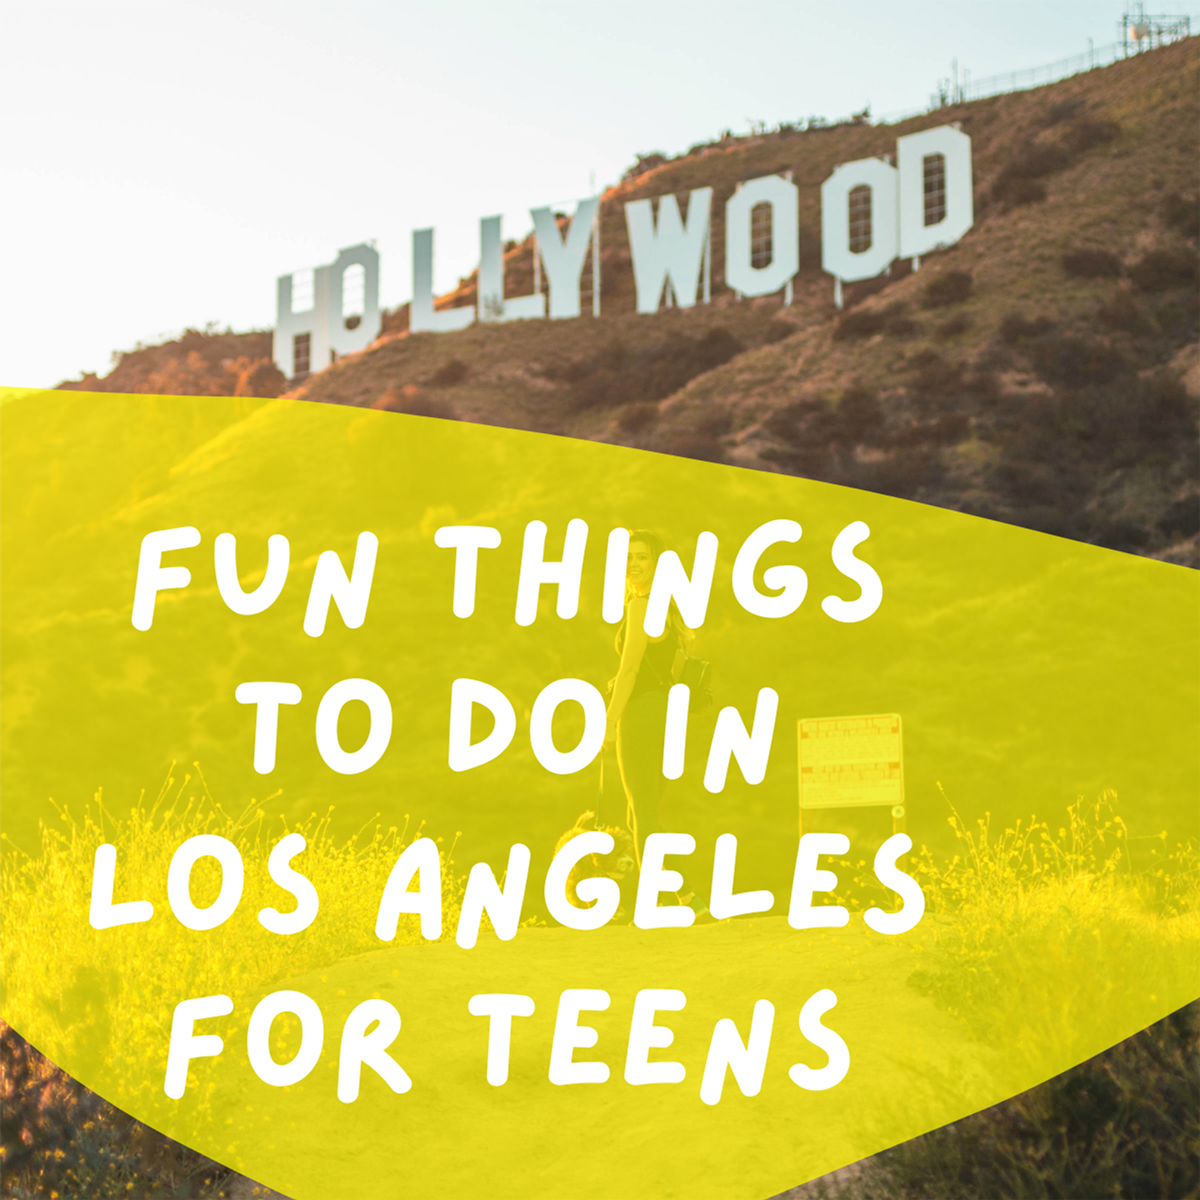 Fun Things T0 Do in Los Angeles for Teens